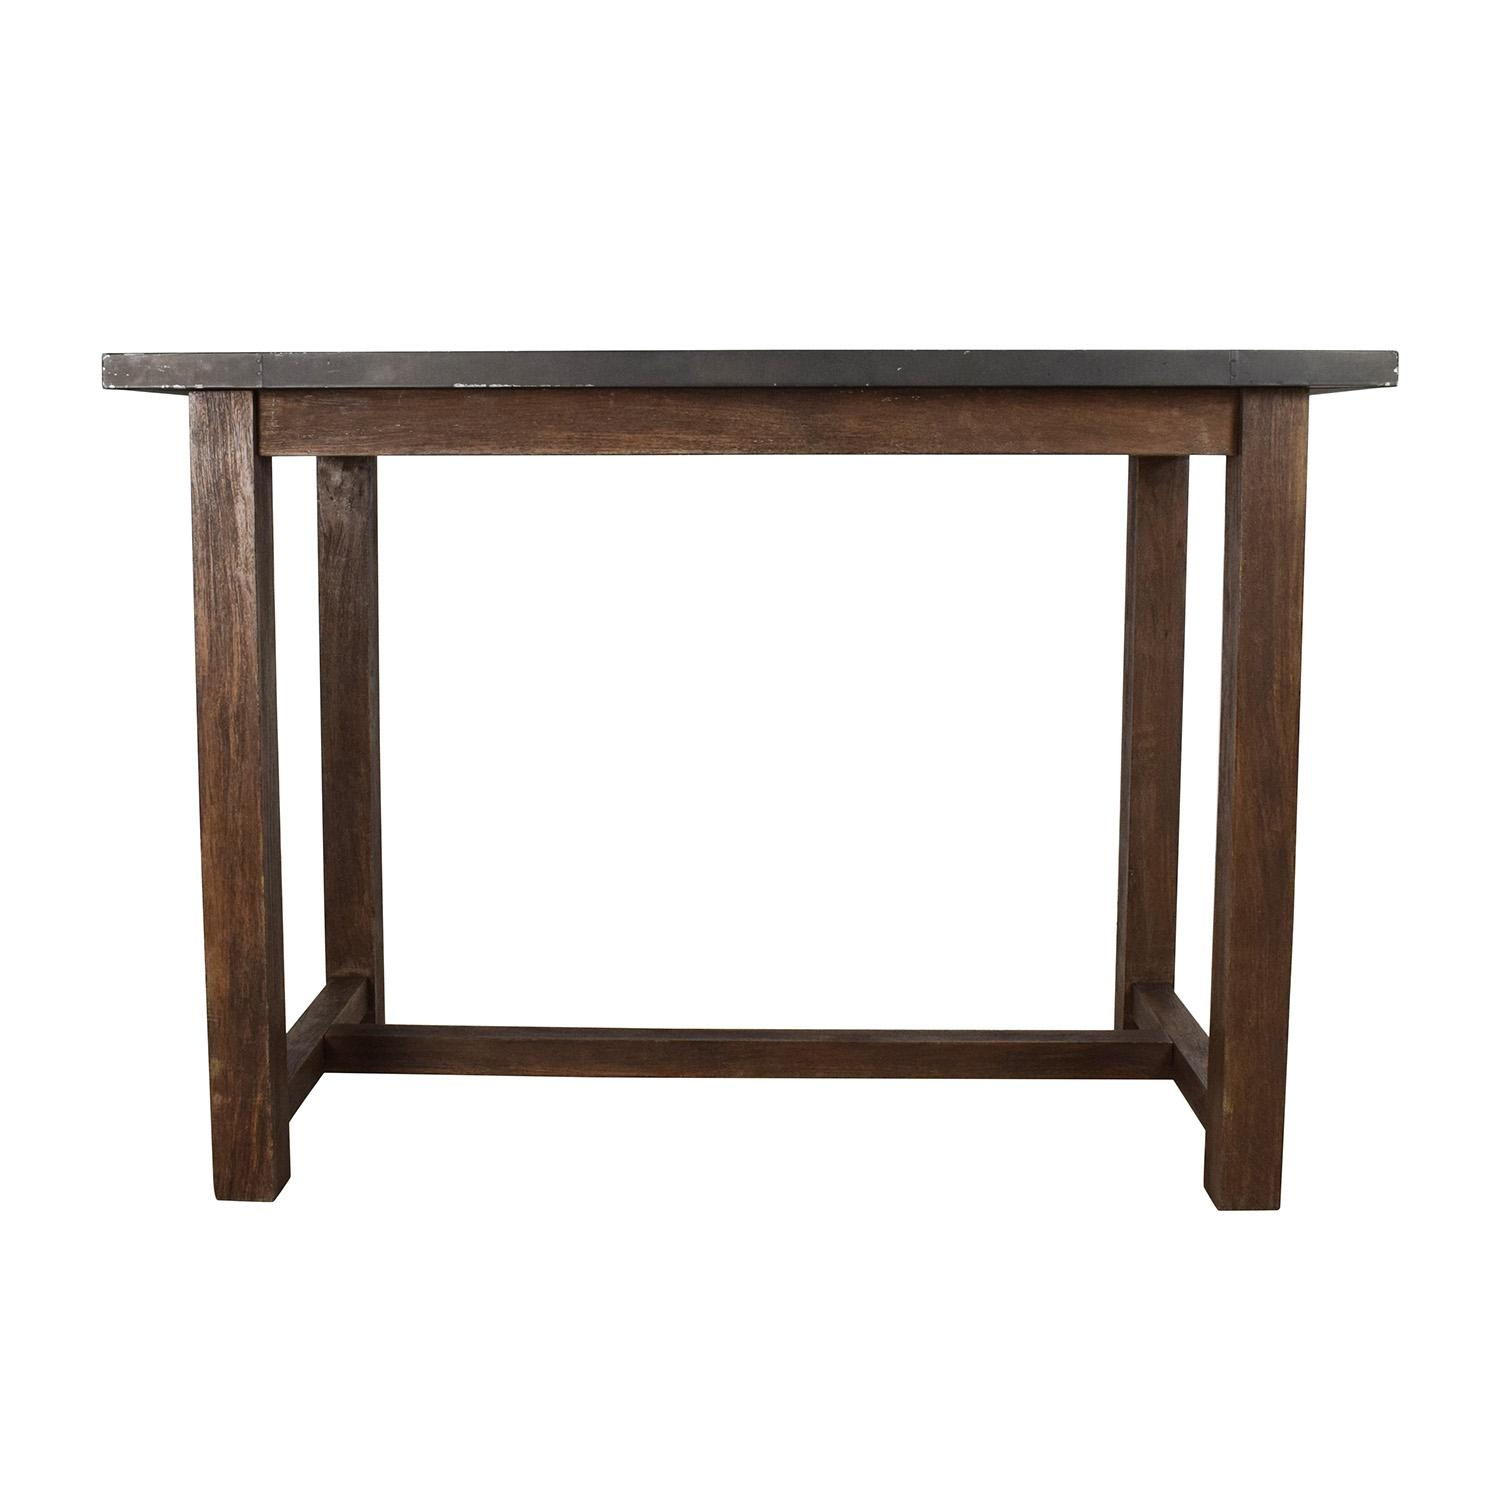 71% Off - Crate And Barrel Crate And Barrel Wood Conference Table for Crate and Barrel Sofa Tables